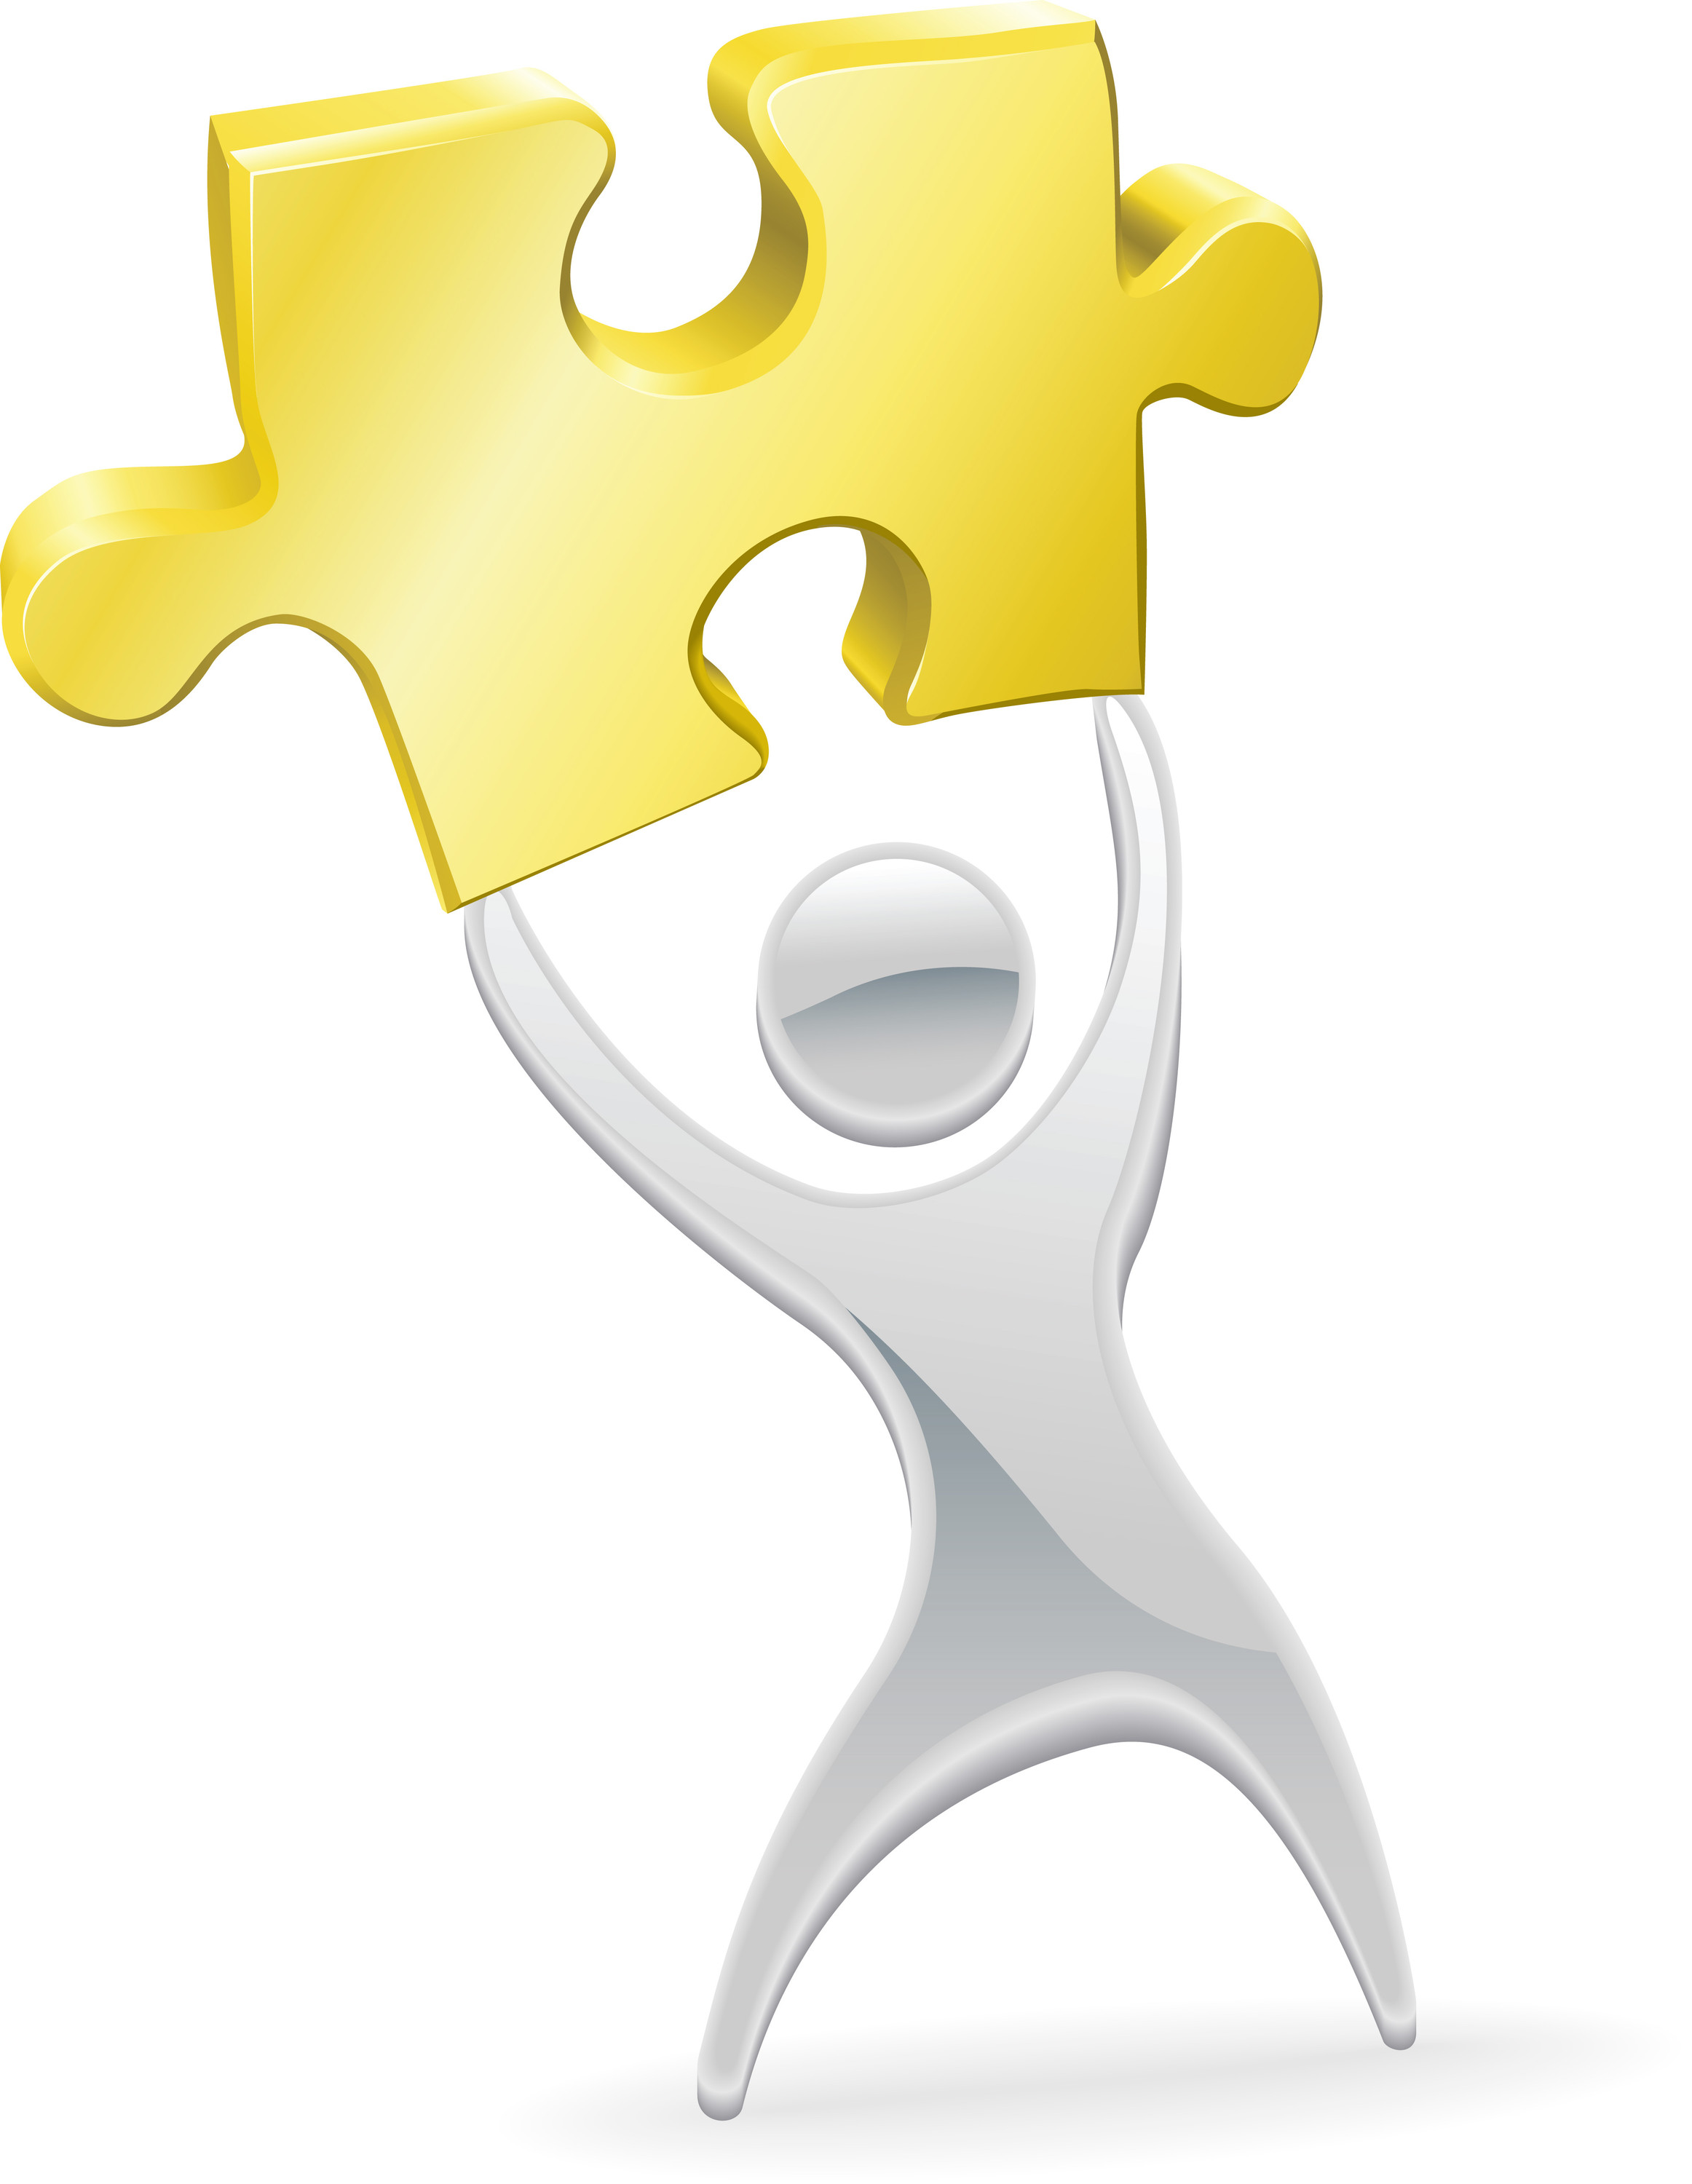 Clip art of person holding puzzle piece